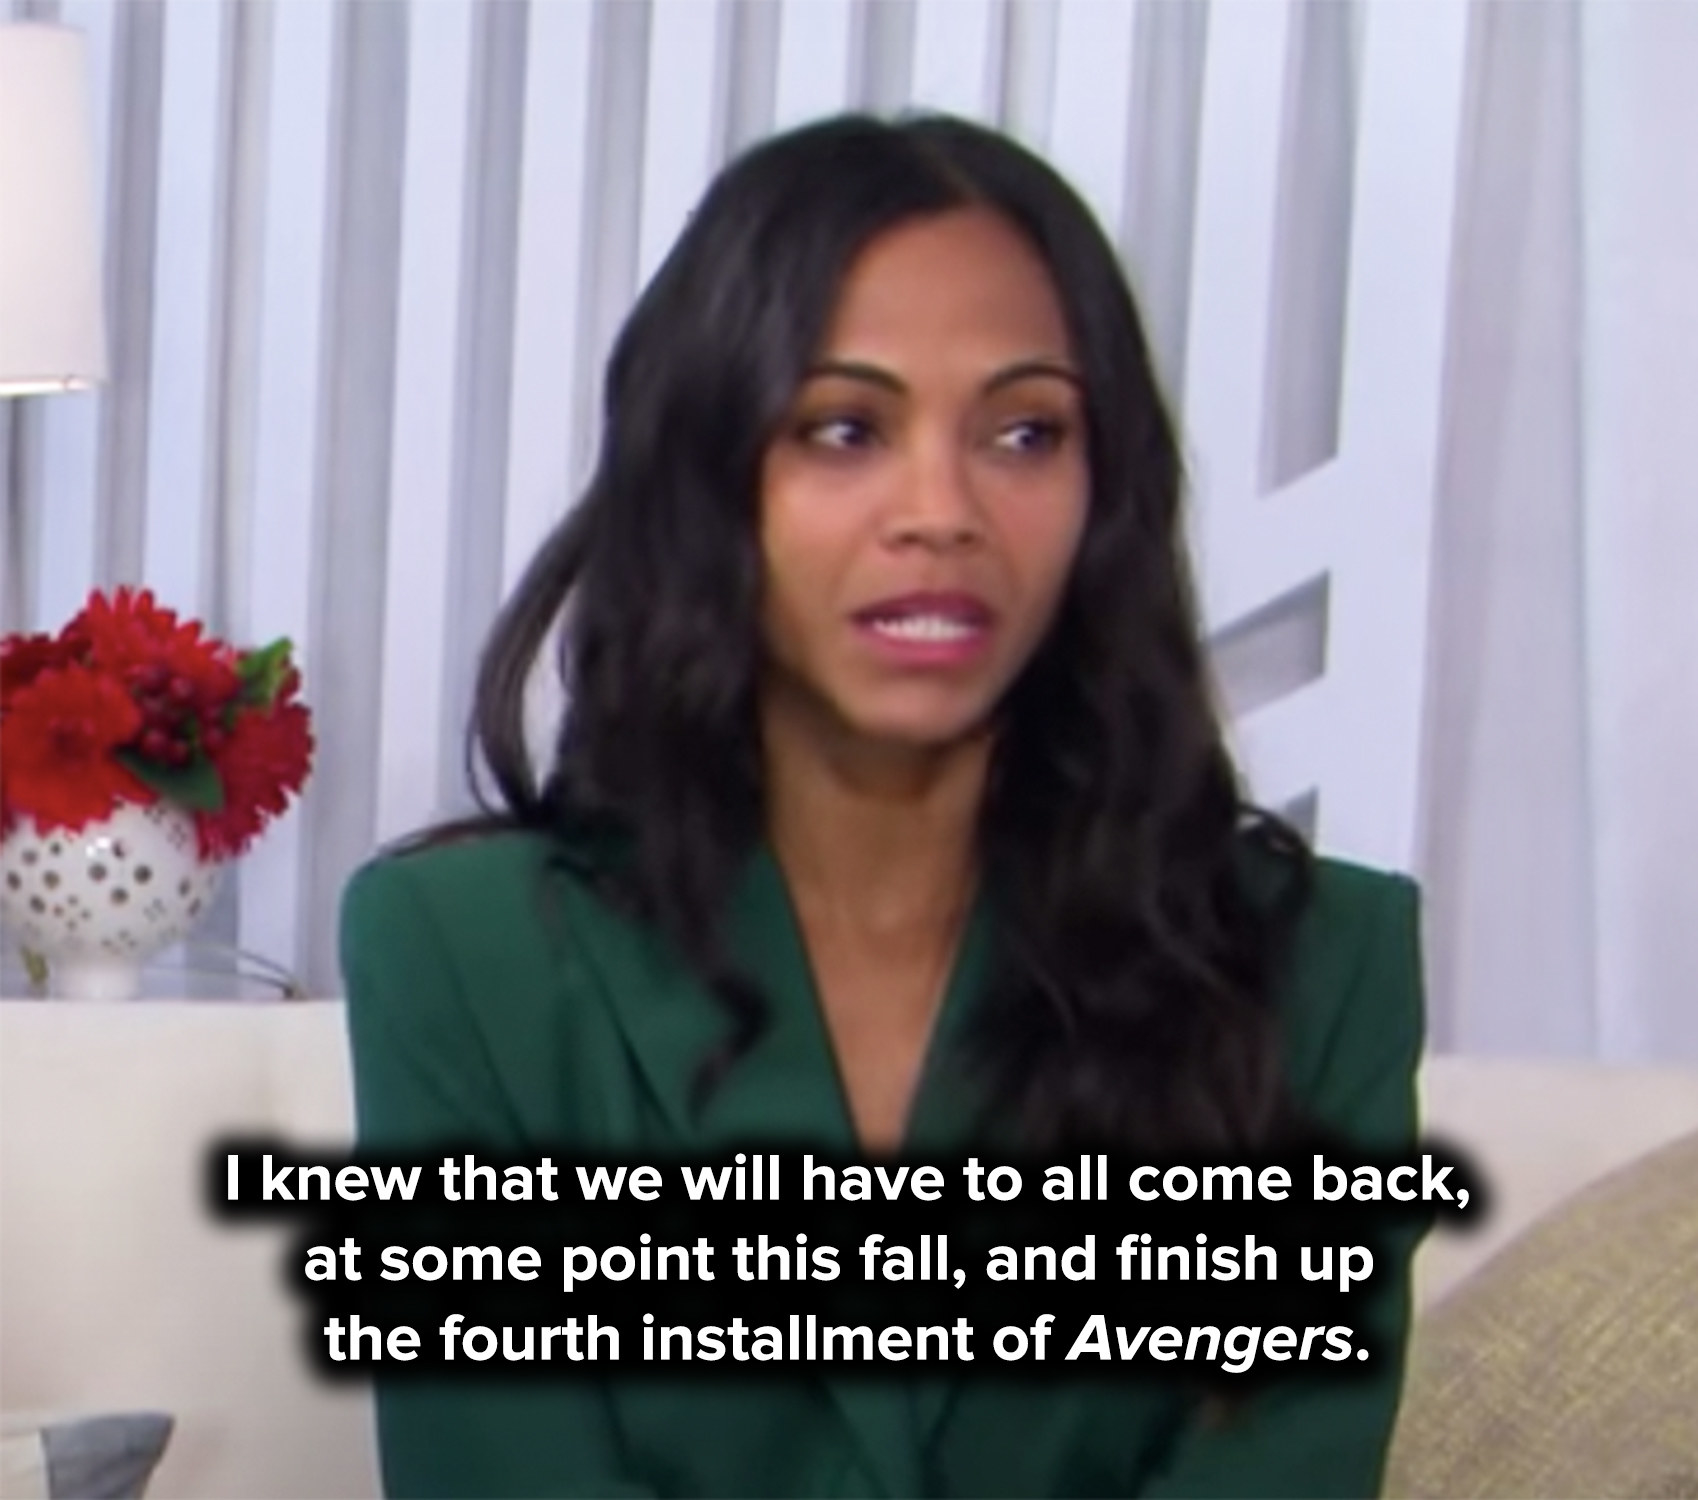 Zoe says she knew they'd all have to come back to finish up Avengers 4